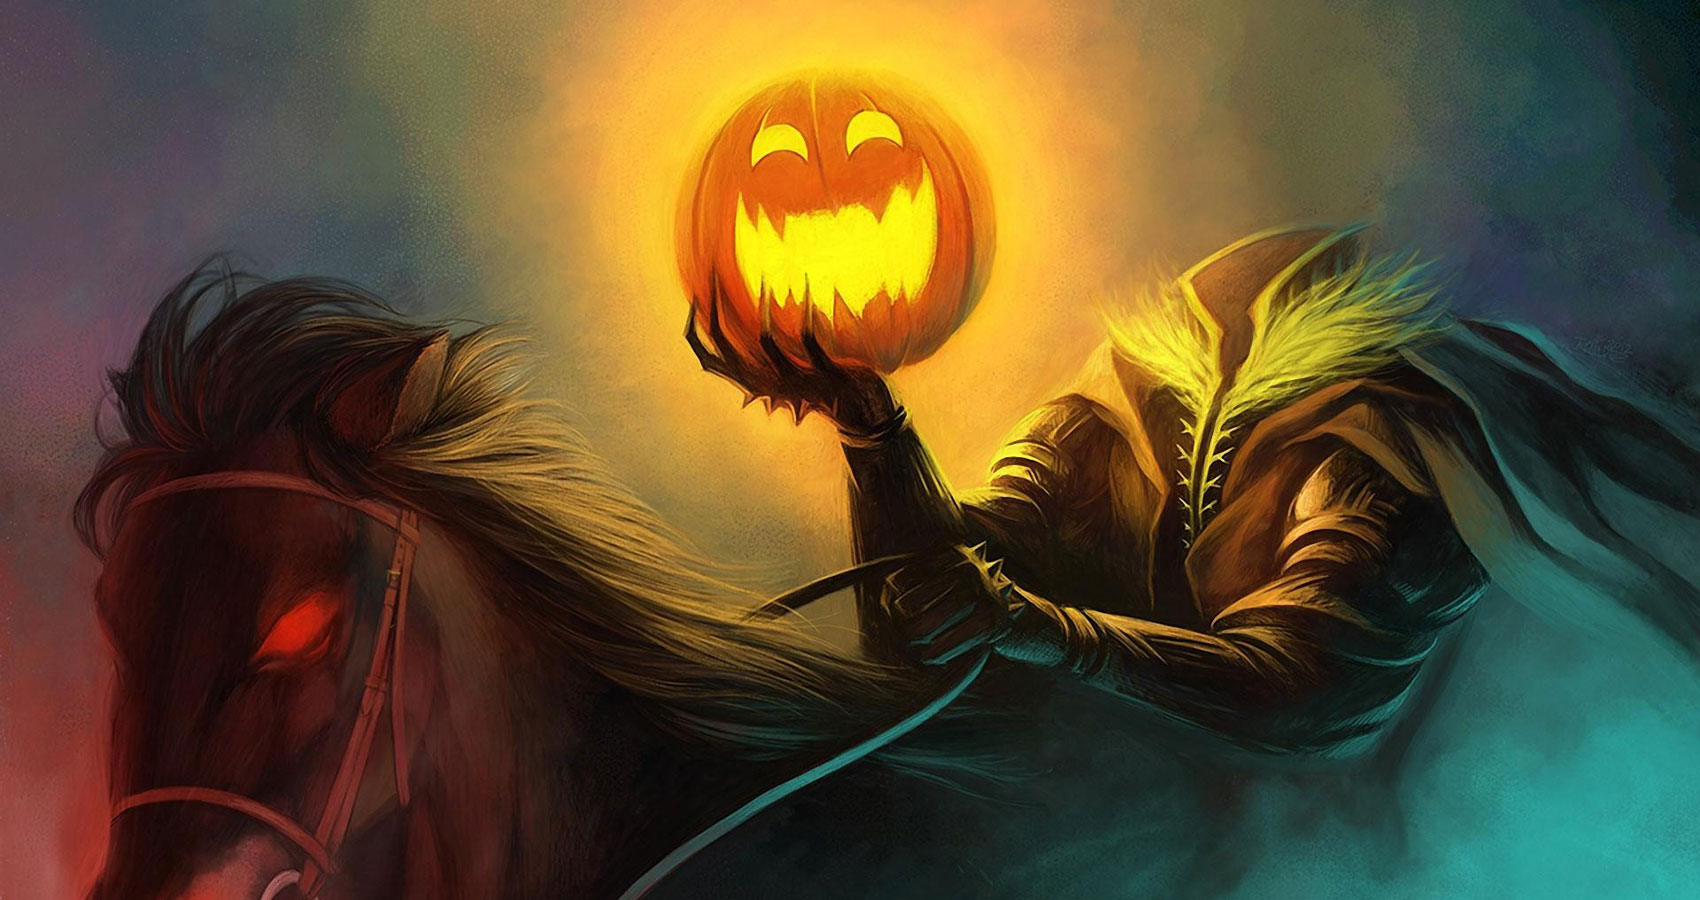 The Thirteen Days of Halloween - The Legend Of Sleepy Hollow at Spillwords.com